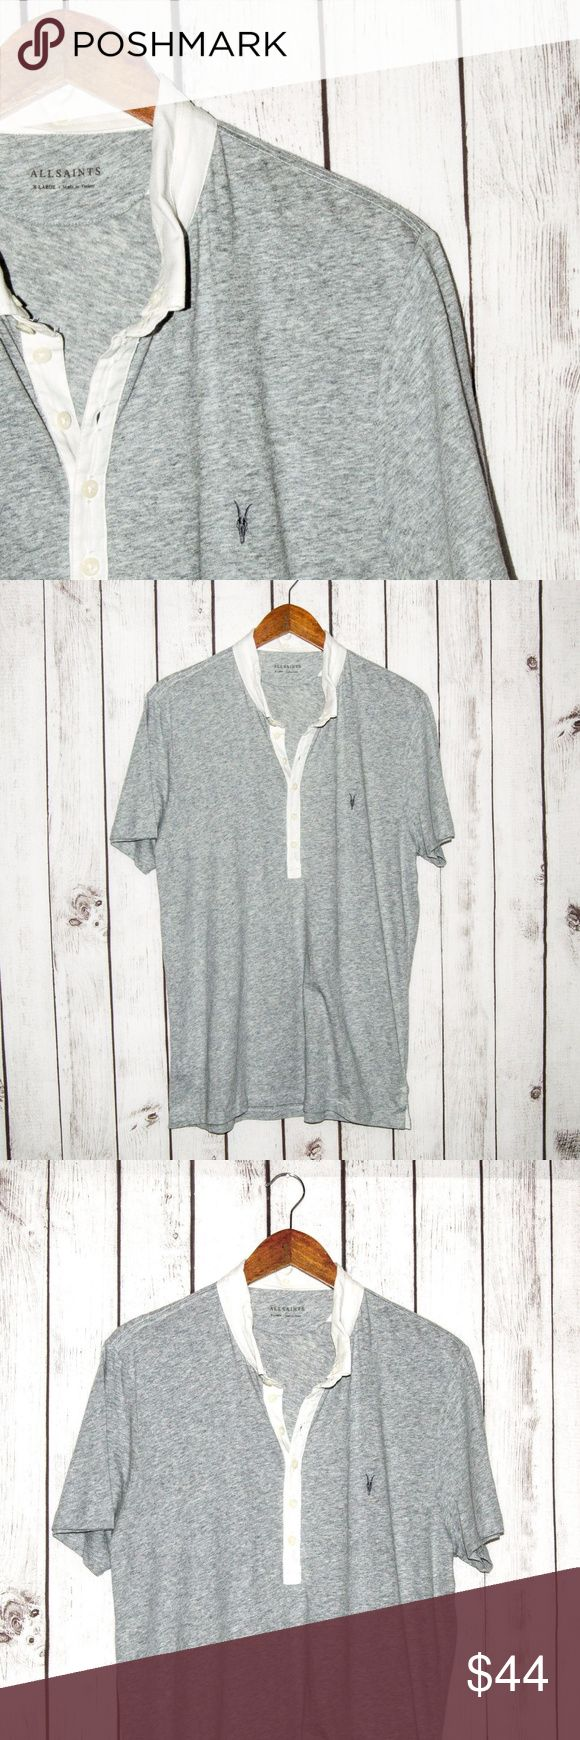 """ALLSAINTS Short Sleeve Polo Shirt inverted Collar ALLSAINTS Men's Short Sleeve Polo Shirt inverted Collar Heather Gray Size XL  Size: XL (Please SEE measurements)  Shoulder to Shoulder: 18""""  Chest (armpit to armpit): 22""""  Length : 29.5""""  Sleeves: 9""""  Condition: Good overall Condition.  Color(s): Gray  Item # 17083027 All Saints Shirts Polos"""